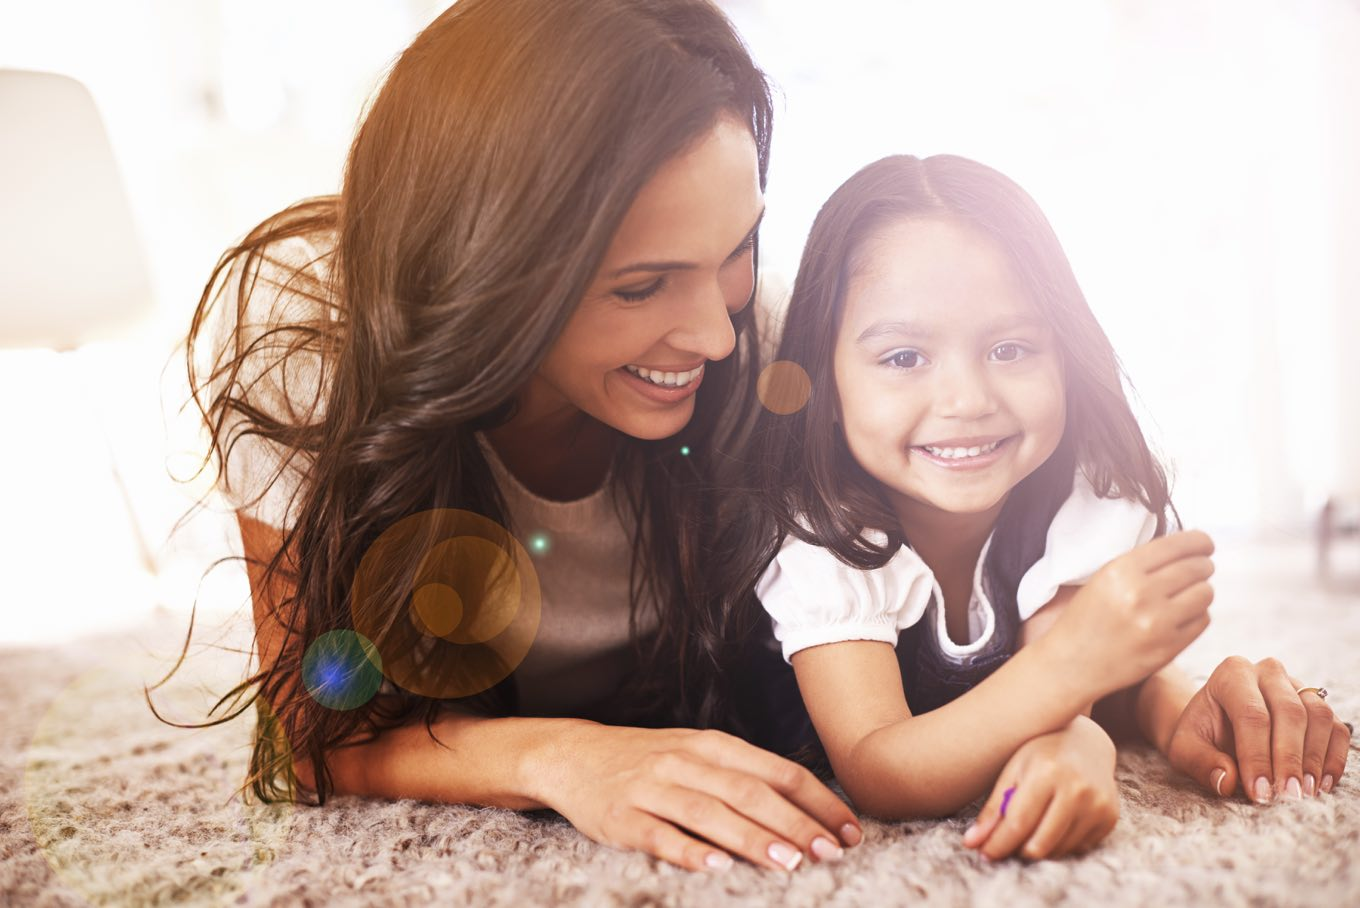 How to Dress Up Your Little Ones for Live Events